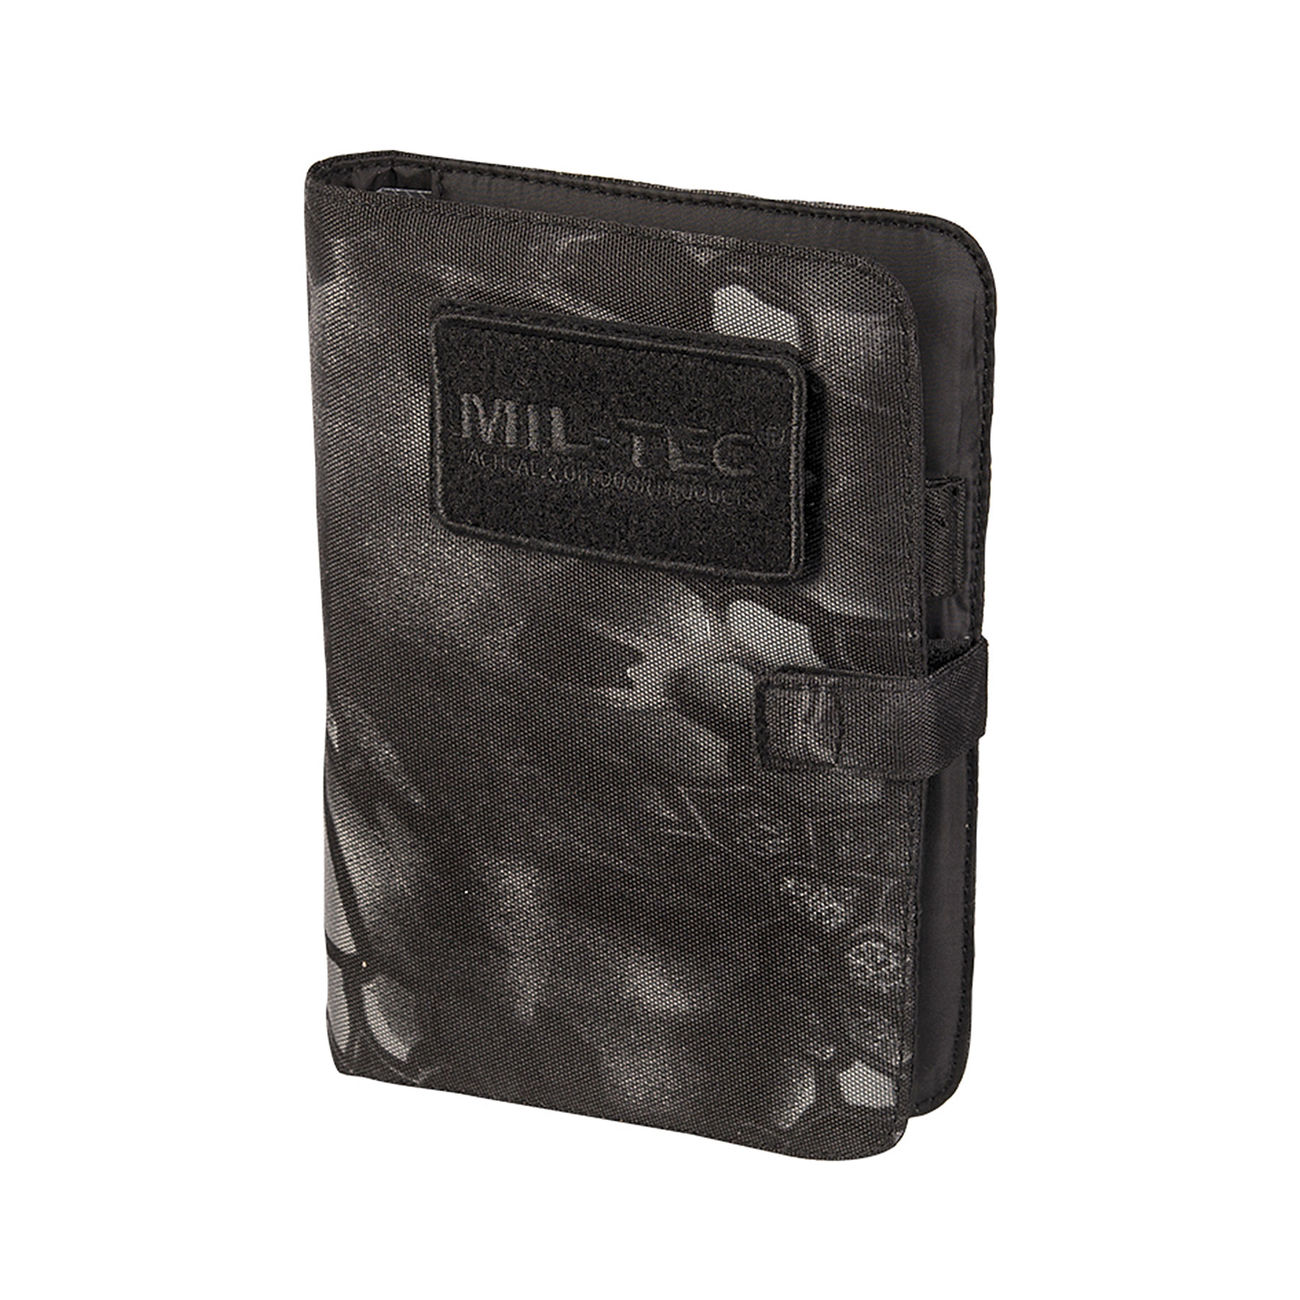 Mil-Tec Tactical Notizbuch Small mandra night 0